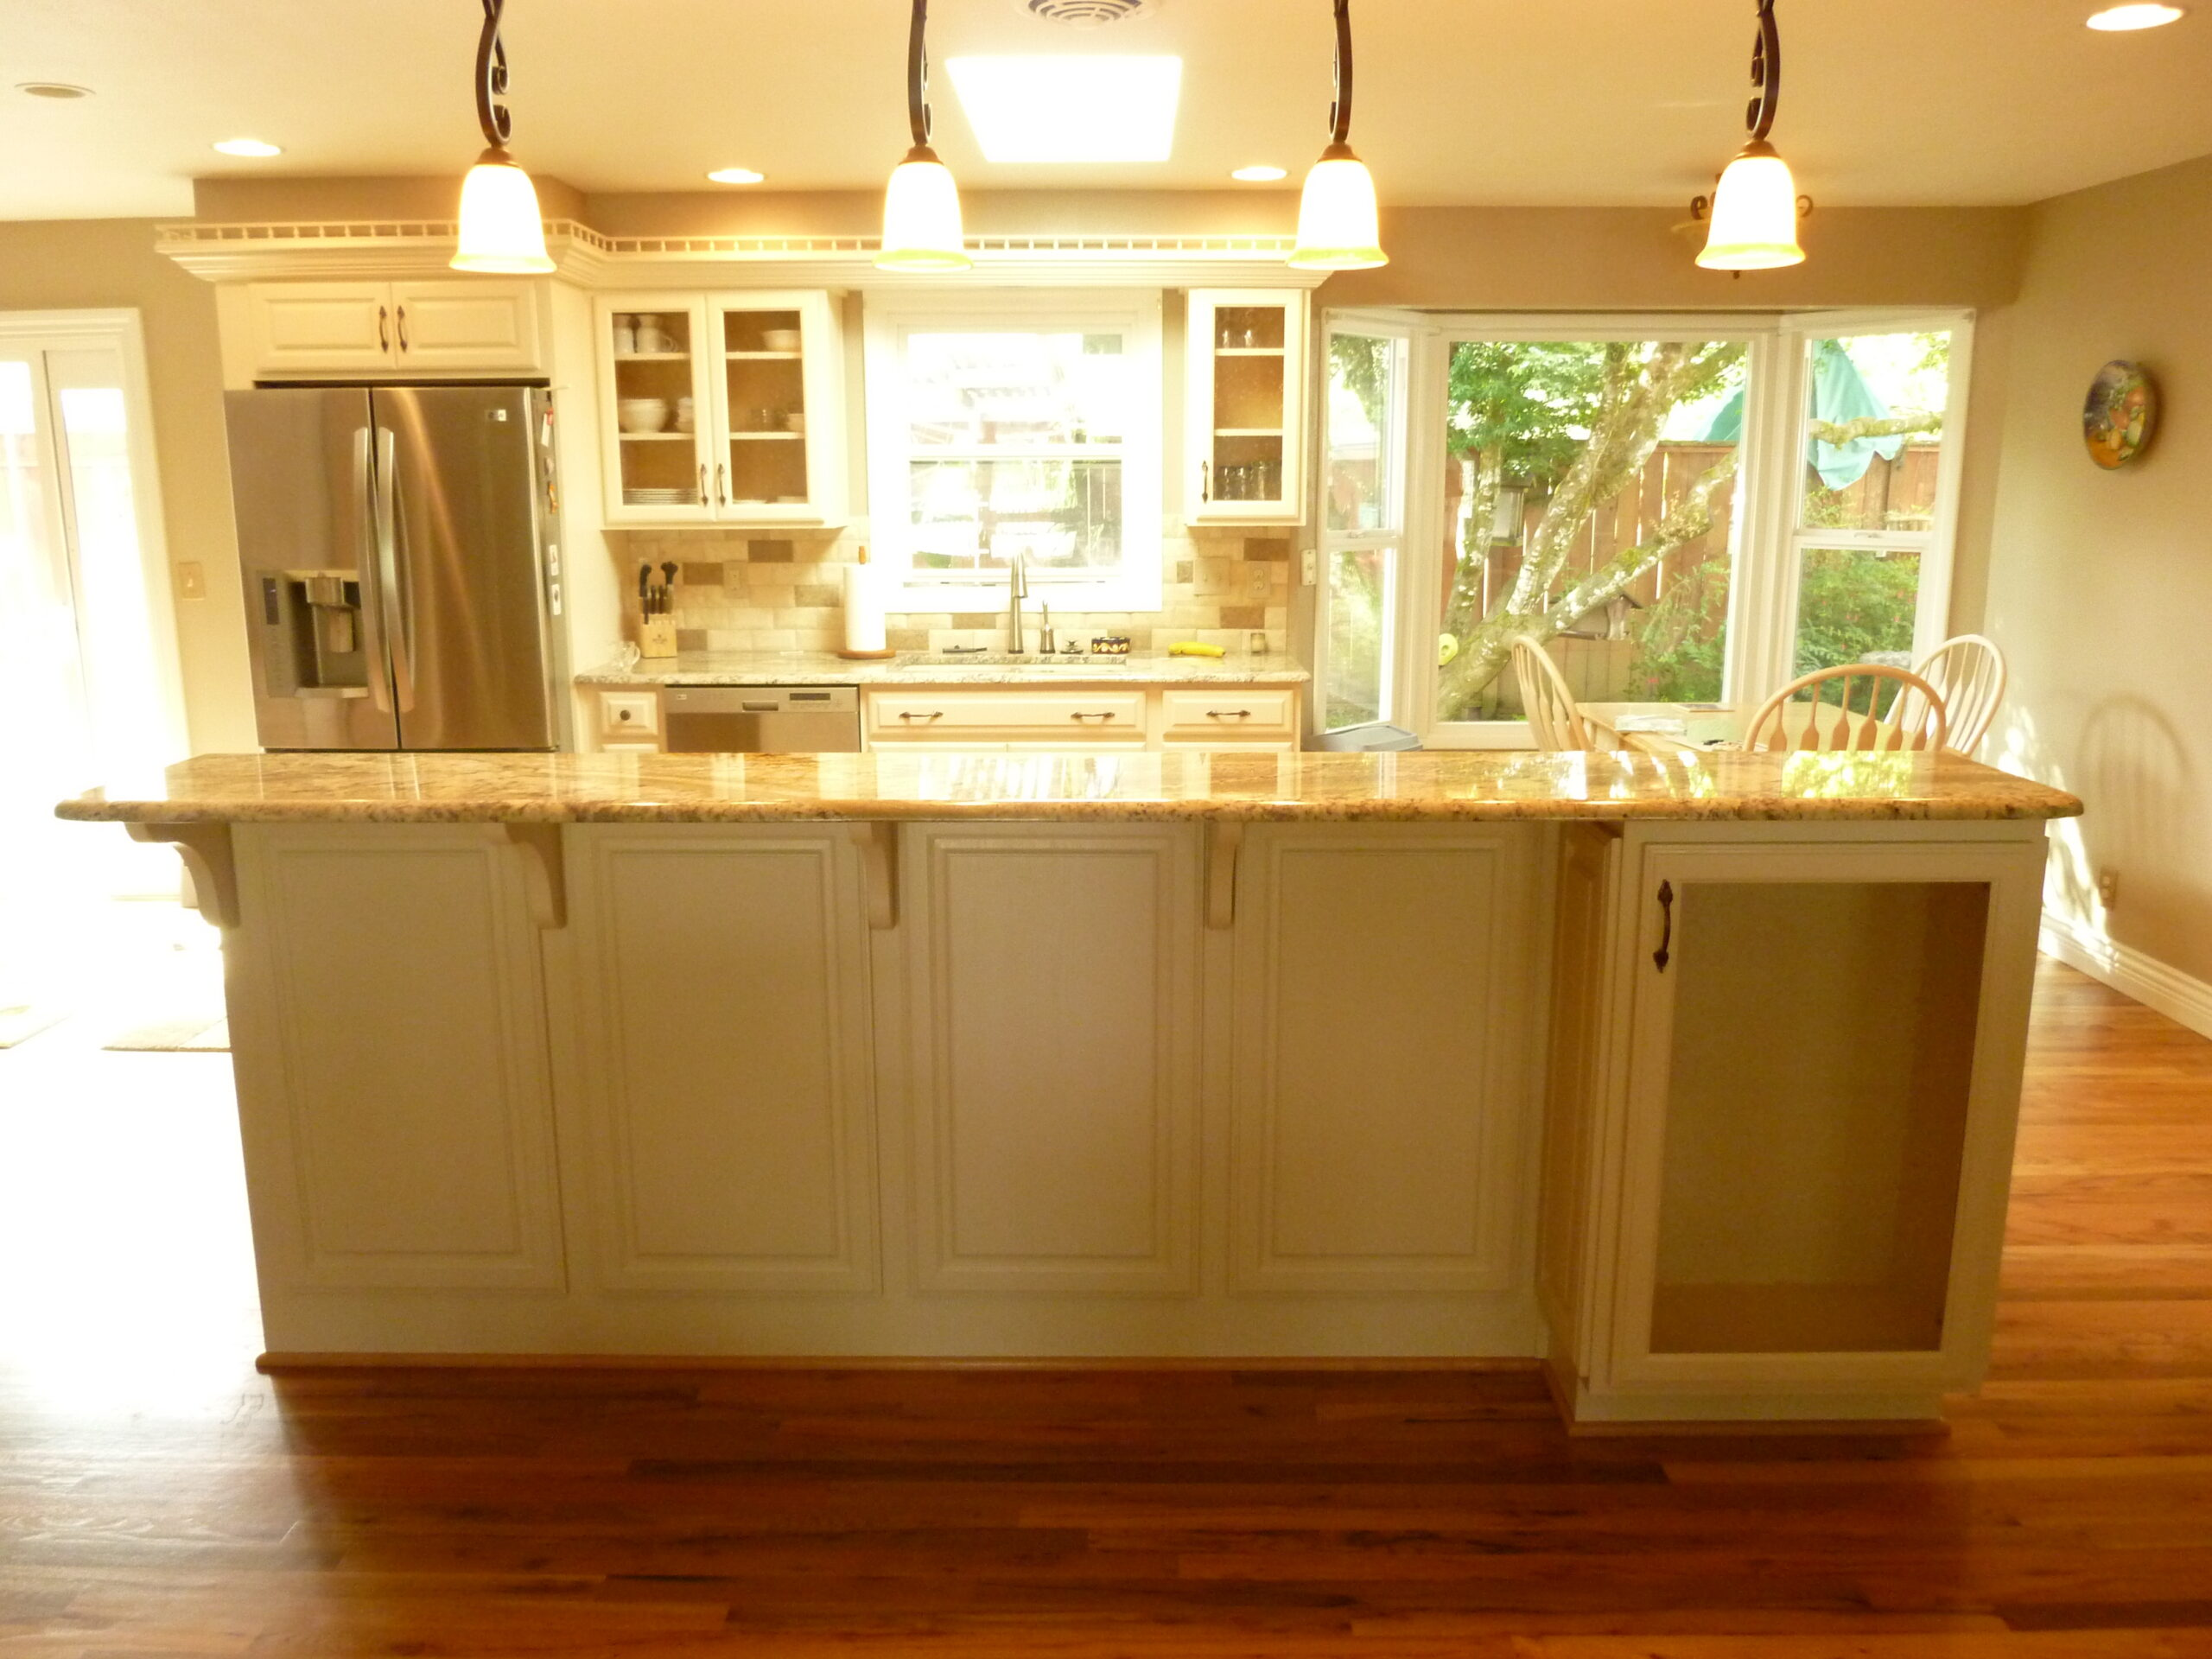 View from behind kitchen island facing sink and refrigerator